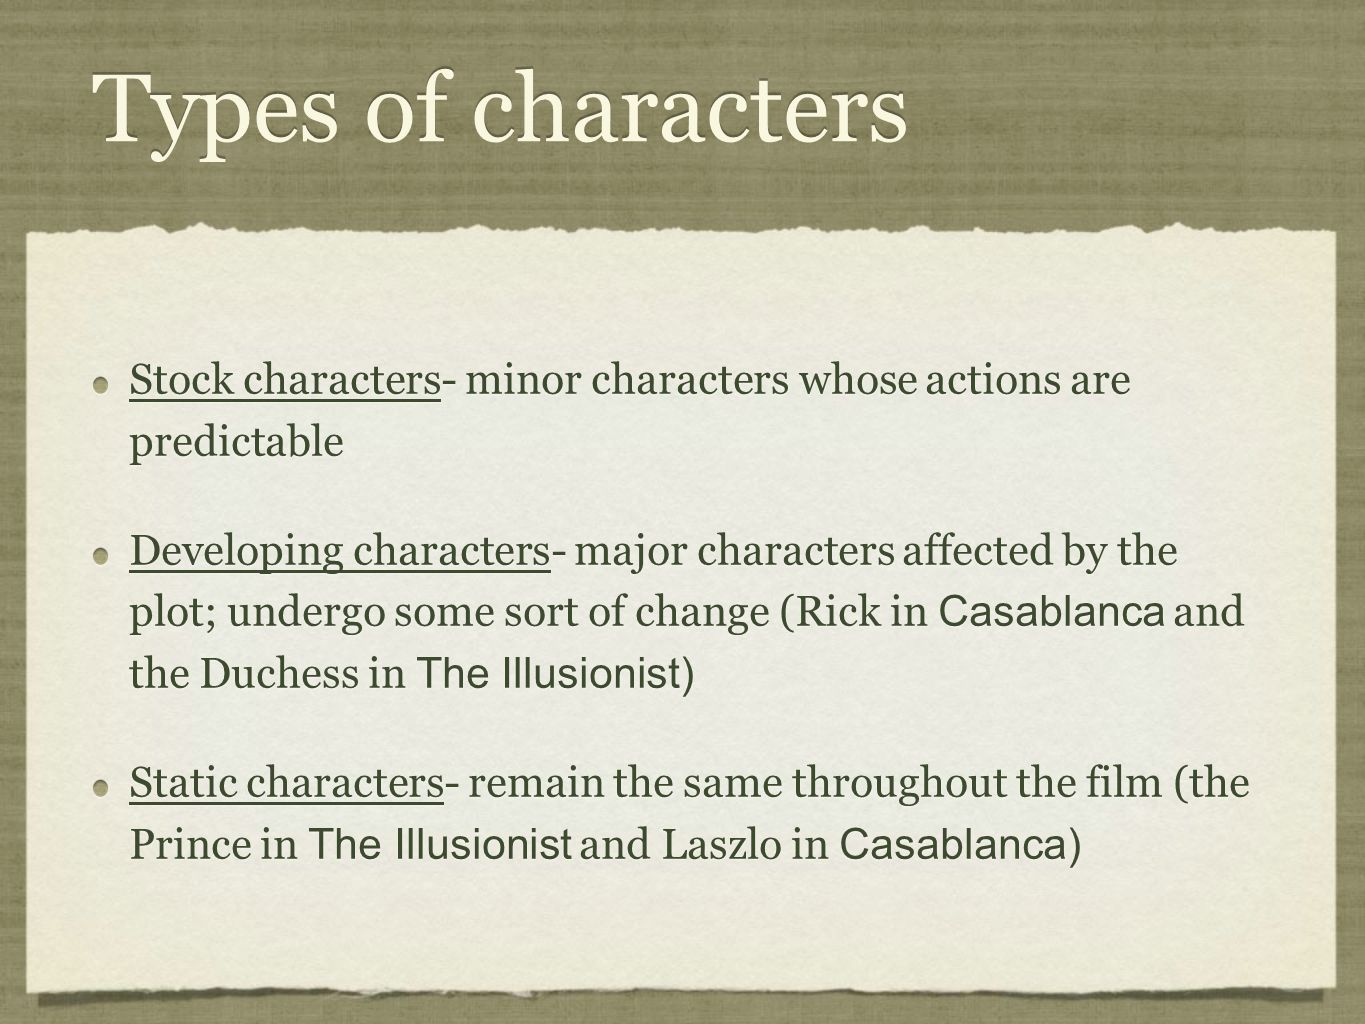 Types of characters Stock characters- minor characters whose actions are predictable Developing characters- major characters affected by the plot; undergo some sort of change (Rick in Casablanca and the Duchess in The Illusionist) Static characters- remain the same throughout the film (the Prince in The Illusionist and Laszlo in Casablanca) Stock characters- minor characters whose actions are predictable Developing characters- major characters affected by the plot; undergo some sort of change (Rick in Casablanca and the Duchess in The Illusionist) Static characters- remain the same throughout the film (the Prince in The Illusionist and Laszlo in Casablanca)